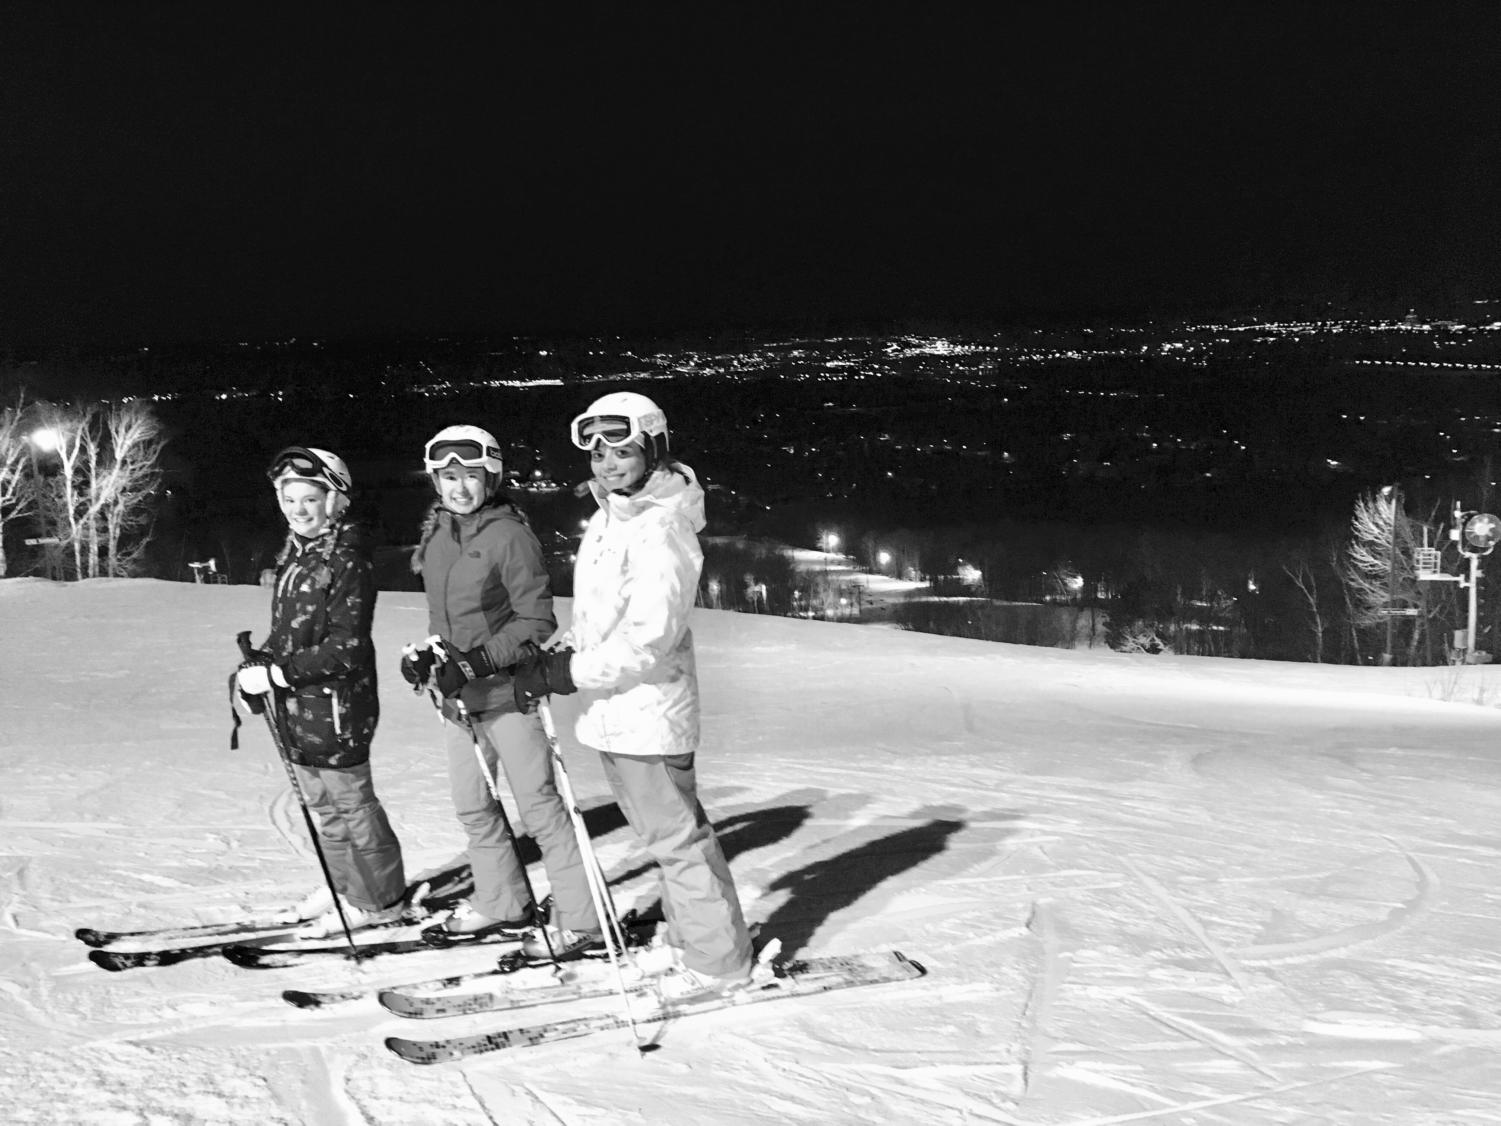 This photograph features senior Savannah Ely (right) on the slopes with family friends only moments before her accident.